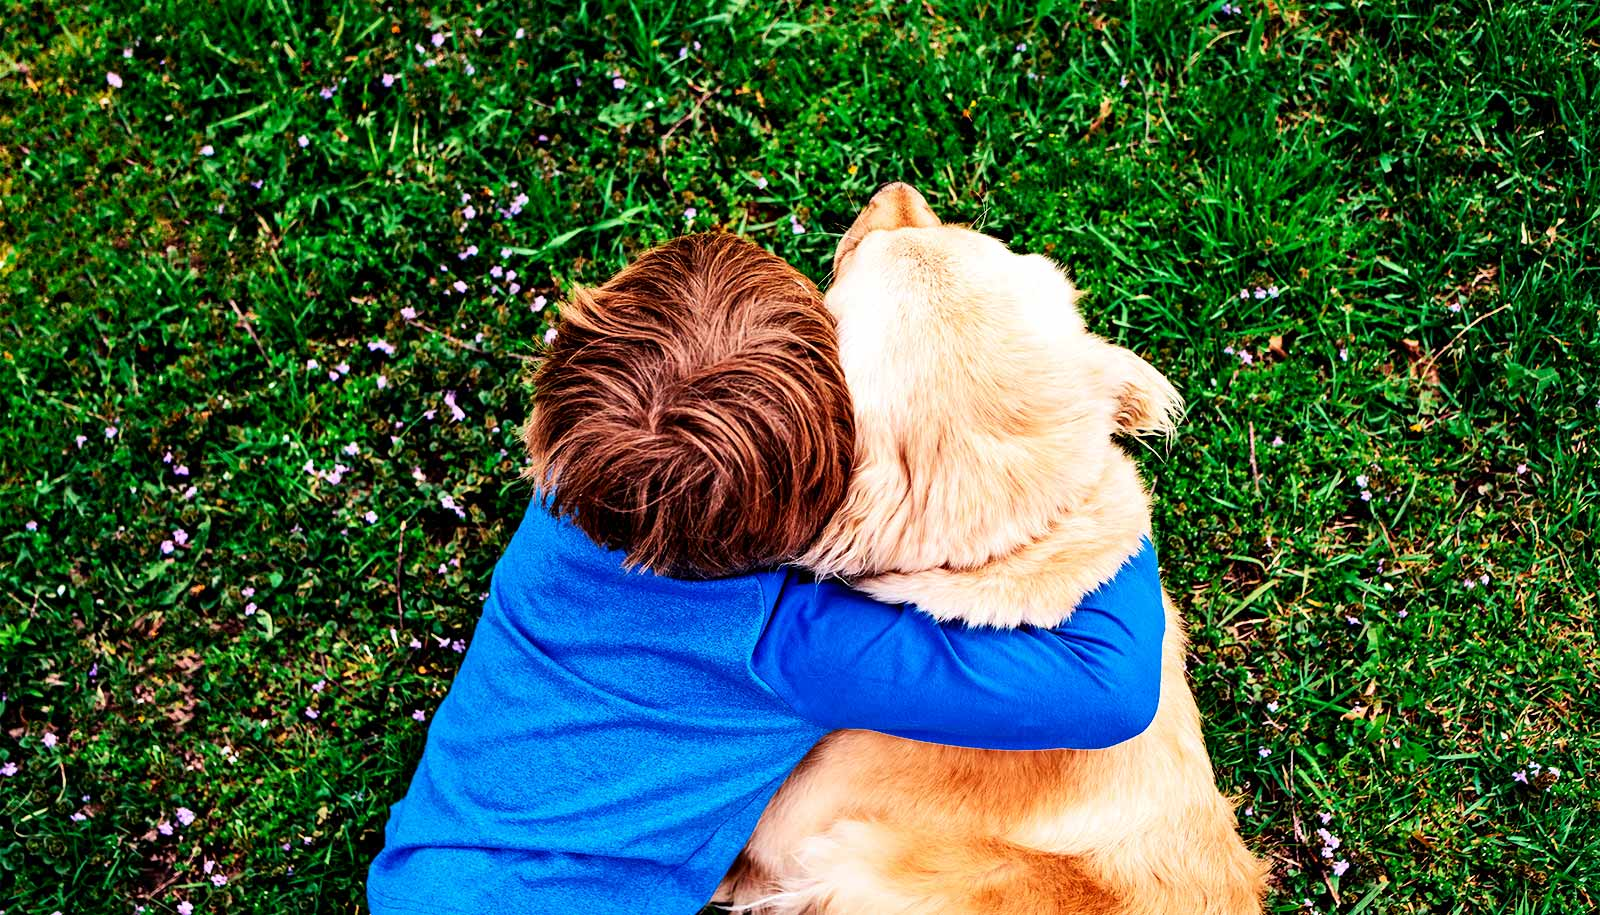 Pet dogs in childhood may cut schizophrenia risk